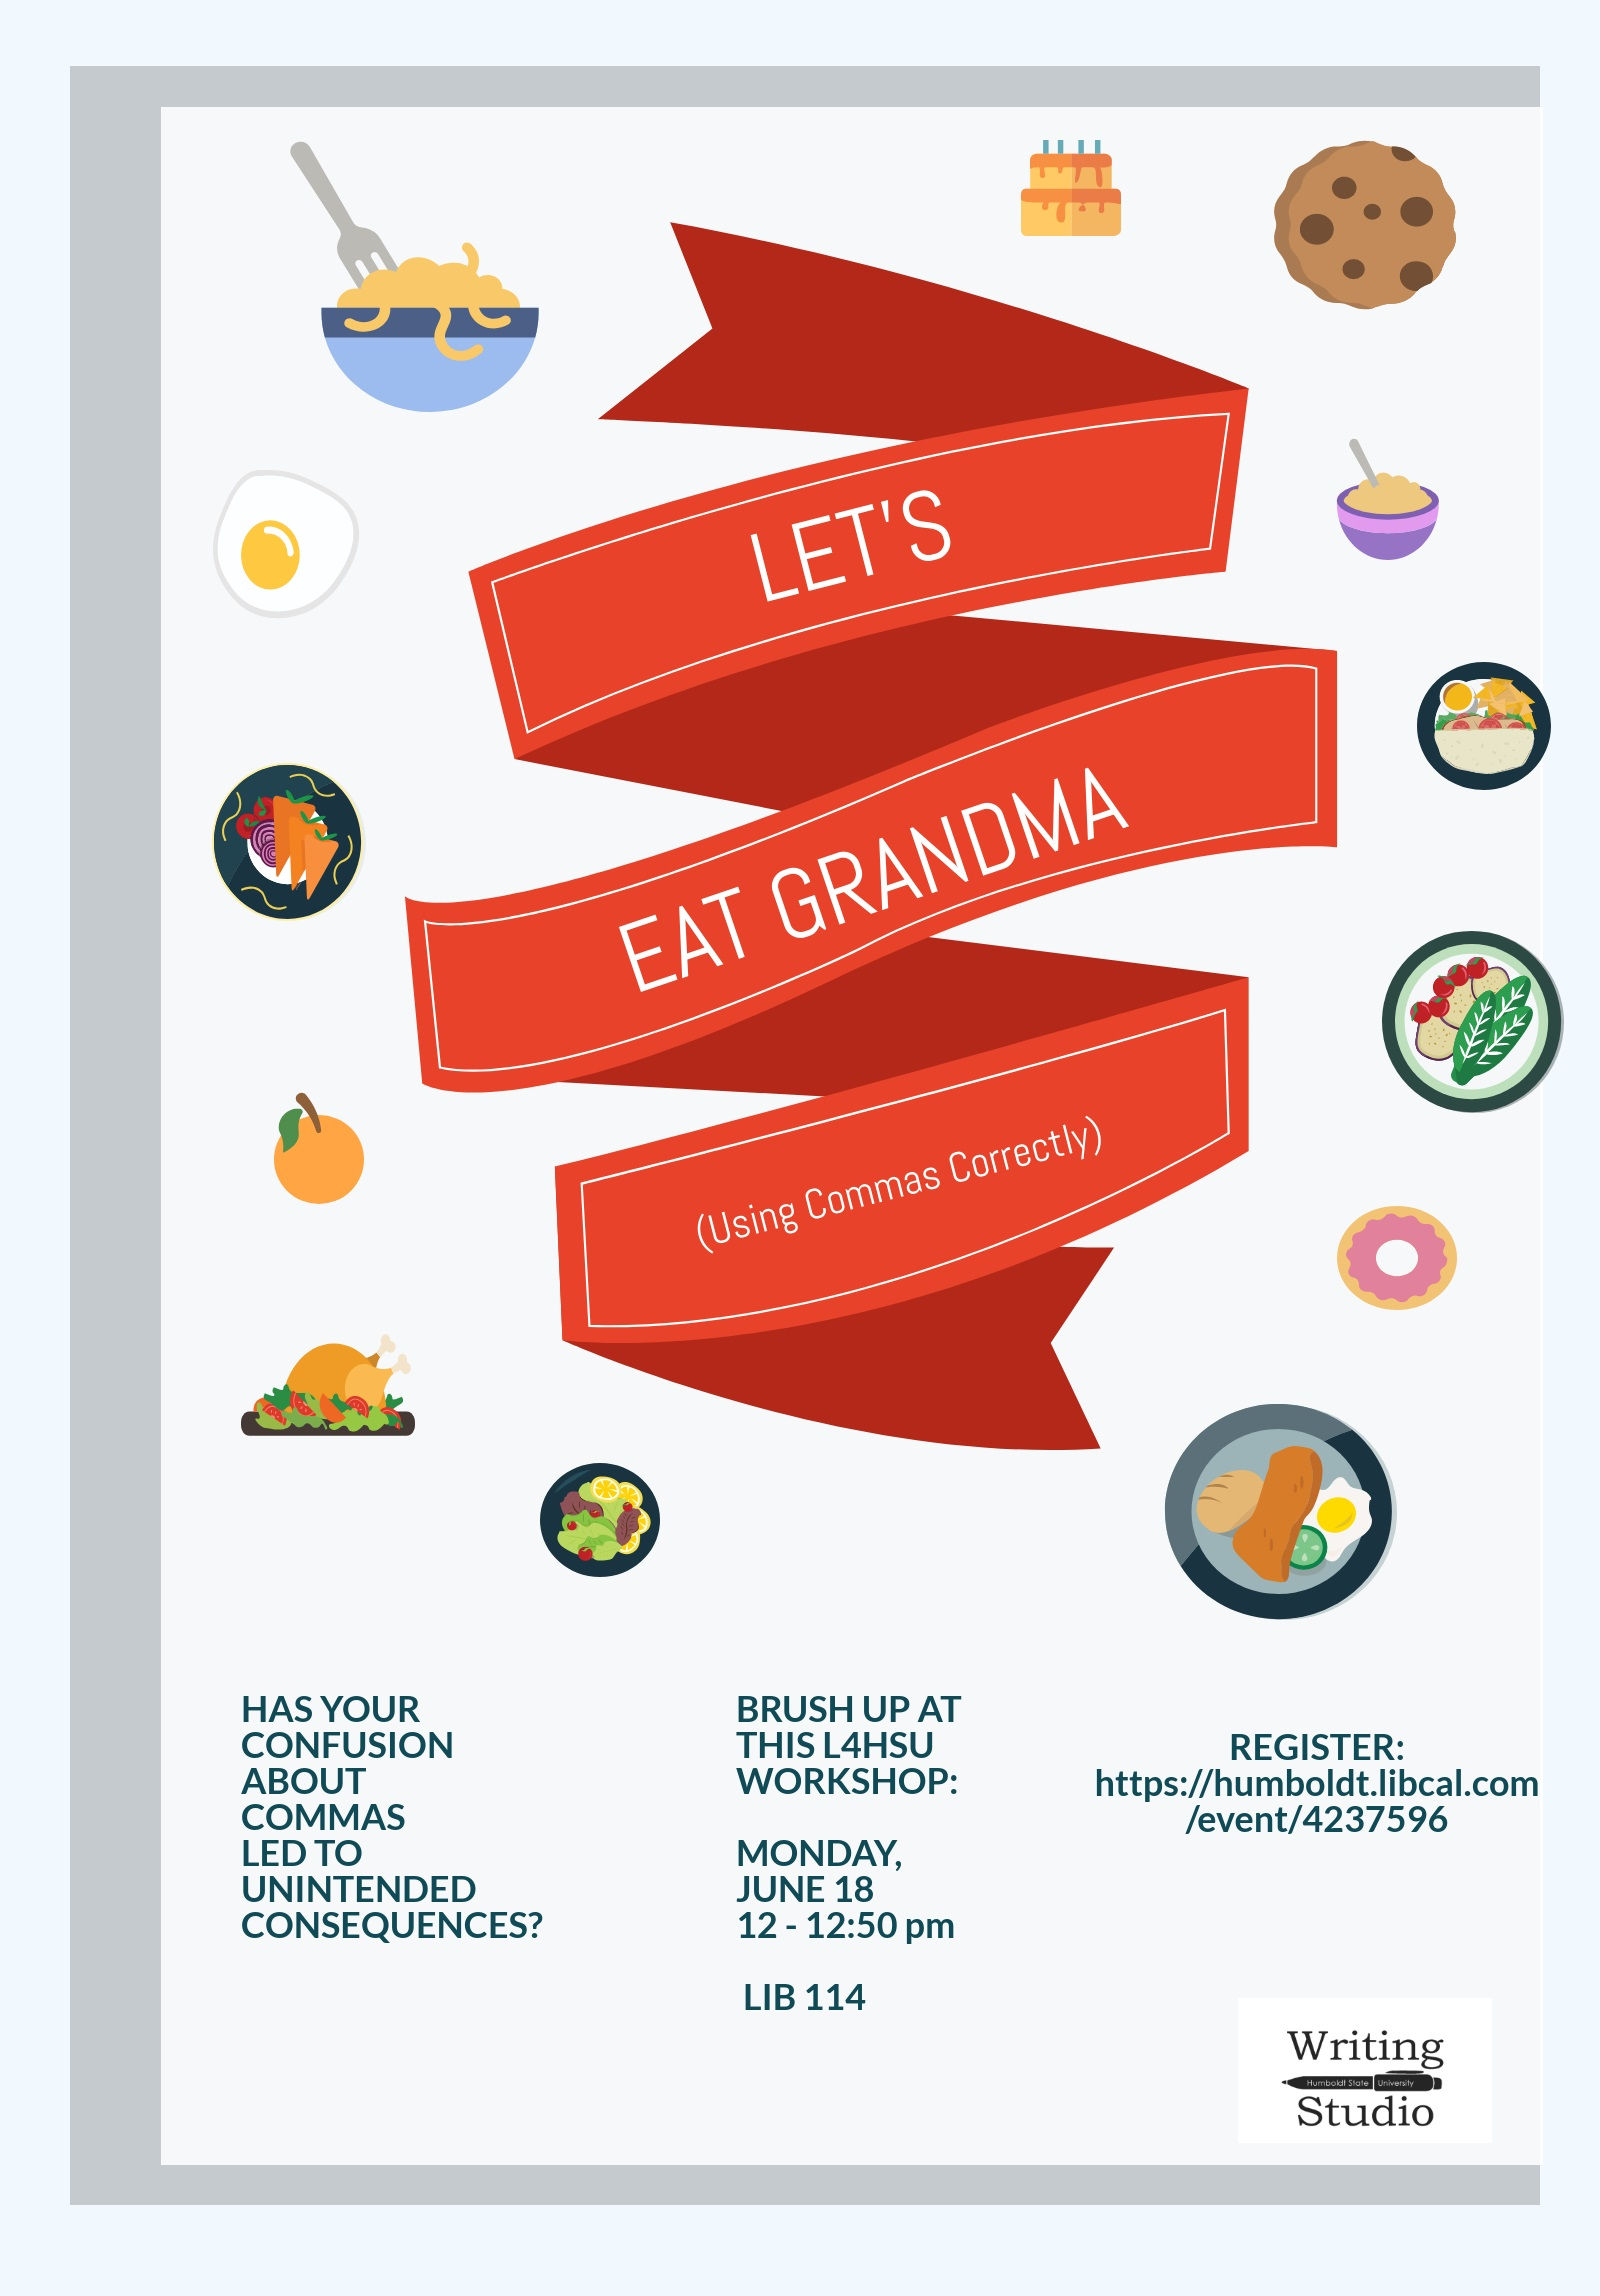 Let's Eat Grandma: Using Commas Correctly